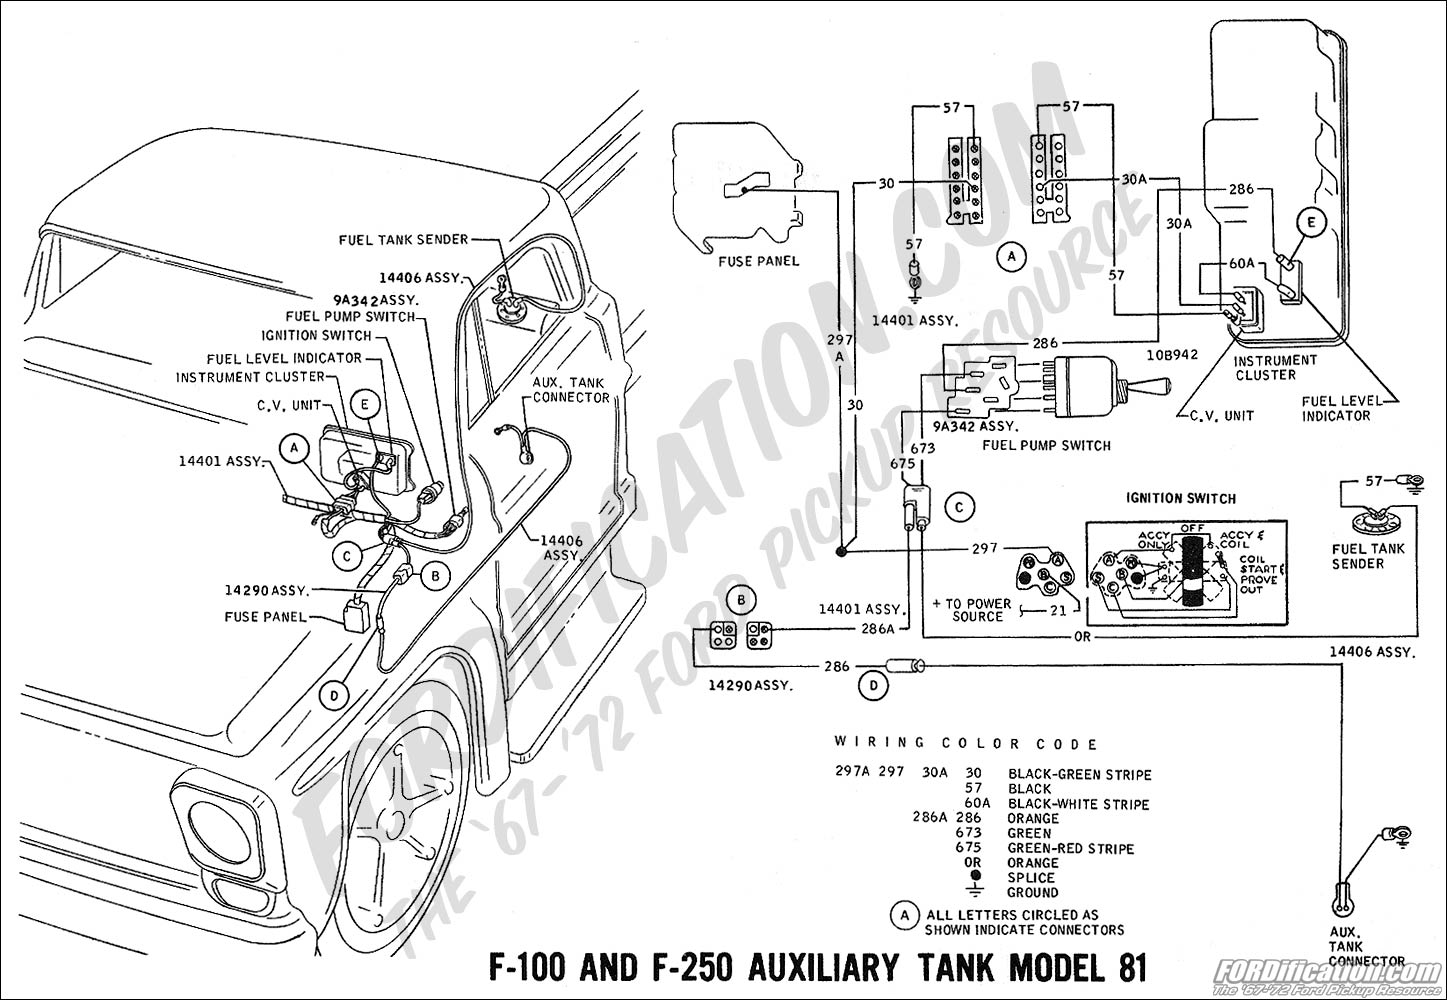 2004 Ford F150 Fuel Tank Diagram Full Hd Version Tank Diagram Levy Diagram Kuteportal Fr